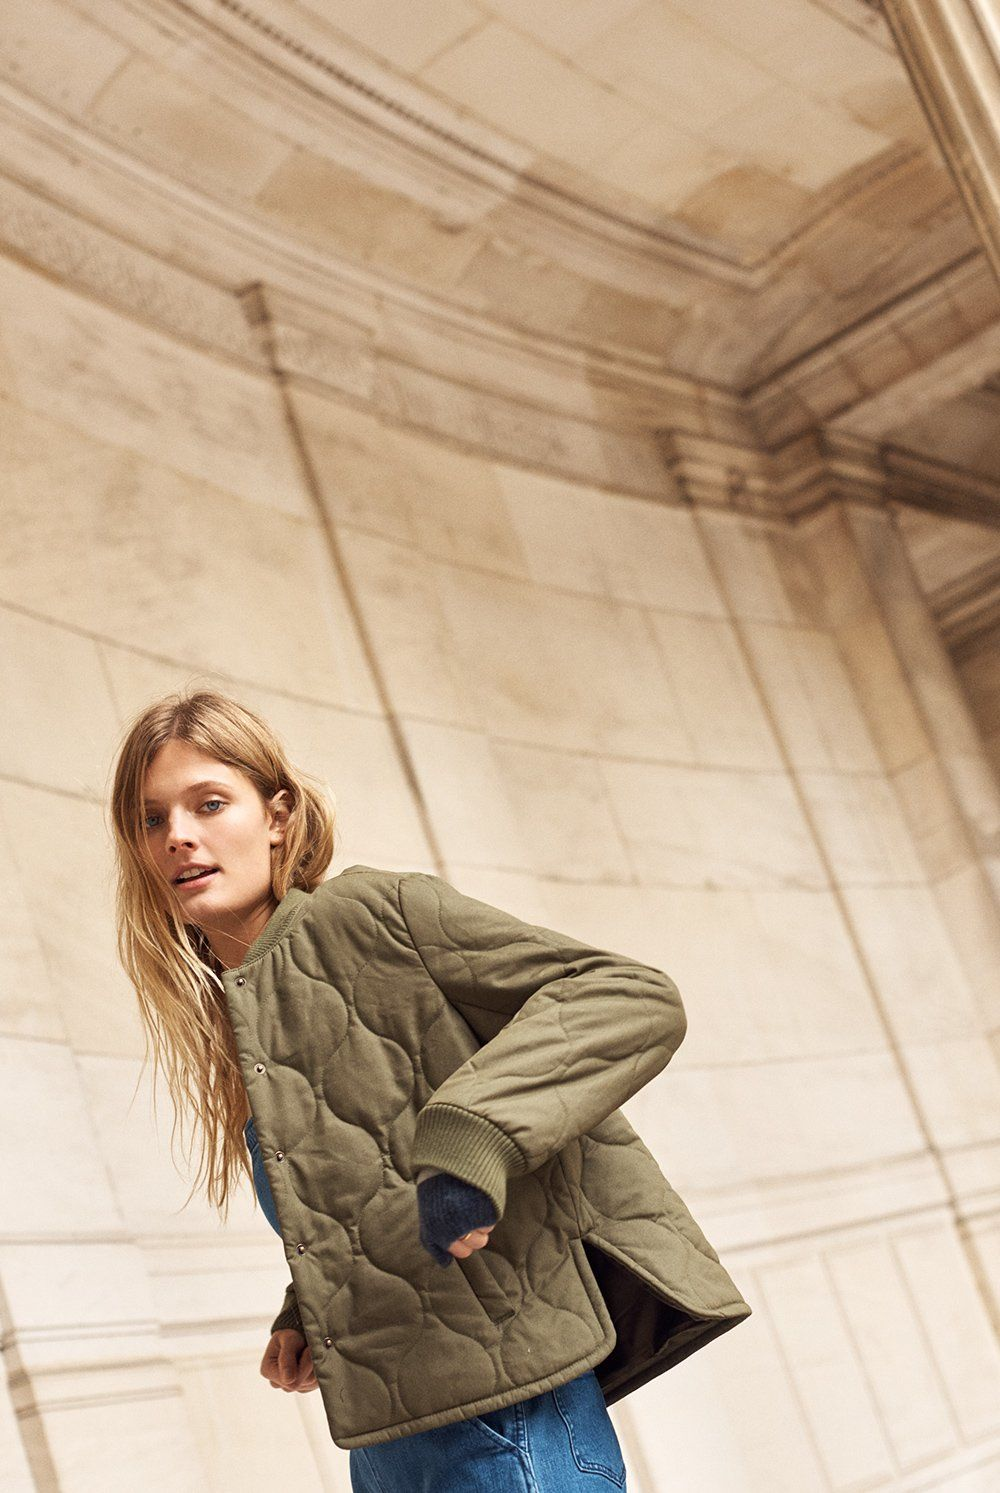 Quilted Military Jacket Style Casual Chic Fashion [ 1493 x 1000 Pixel ]